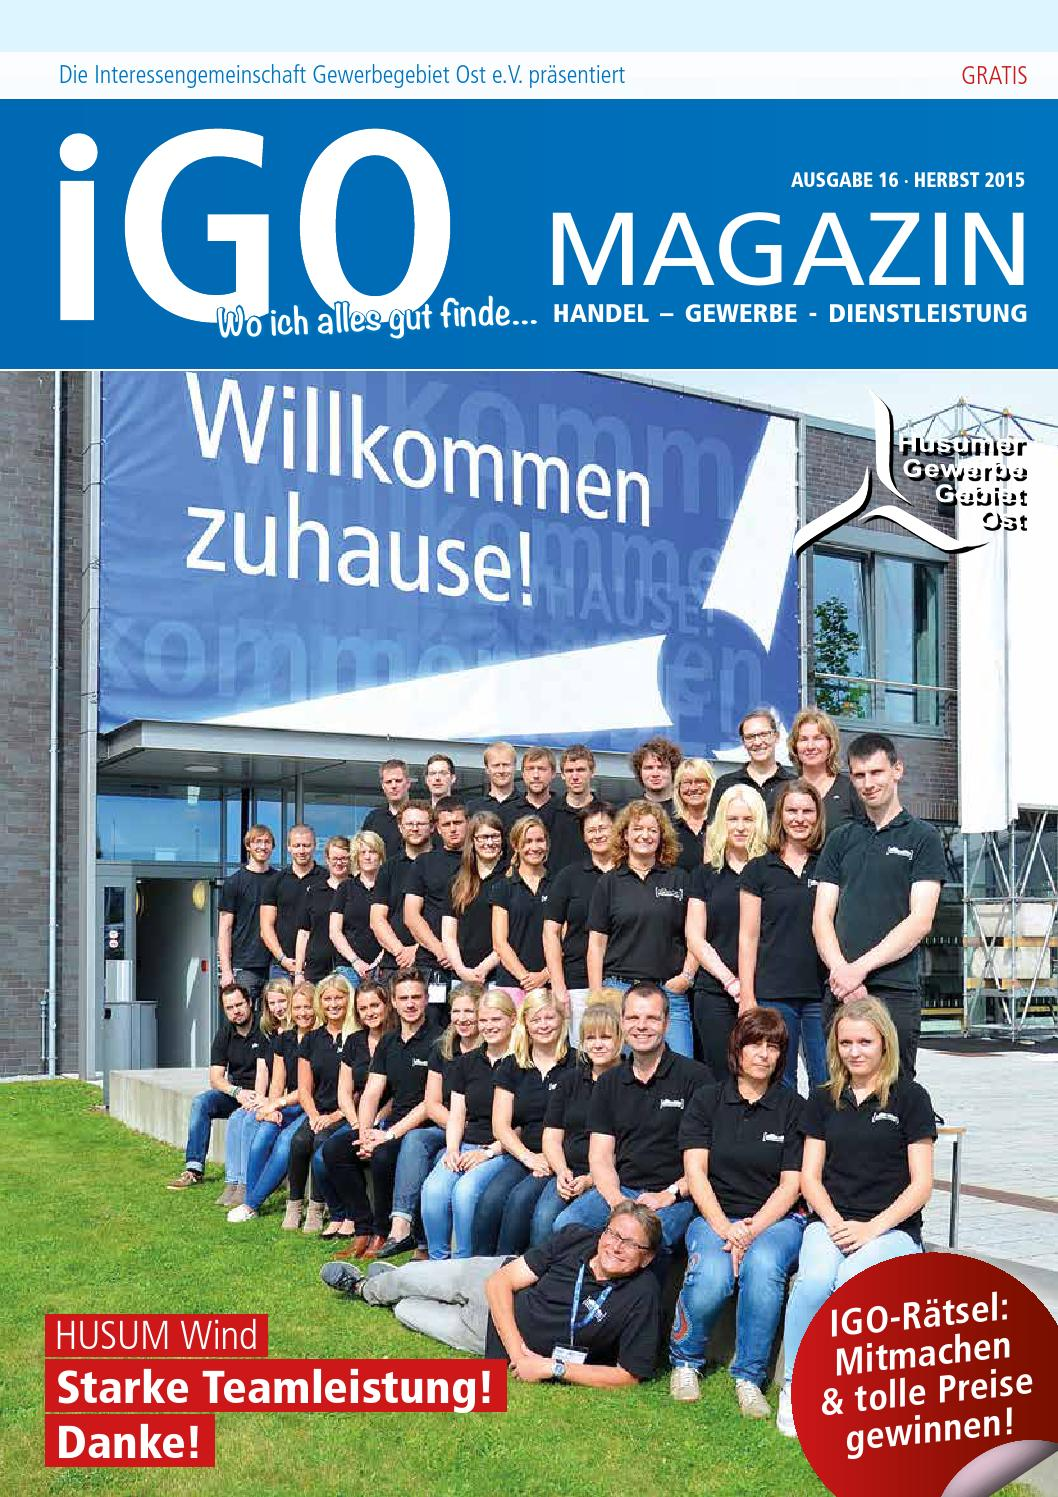 iGO Magazin - Herbst 2015 by new media works - issuu